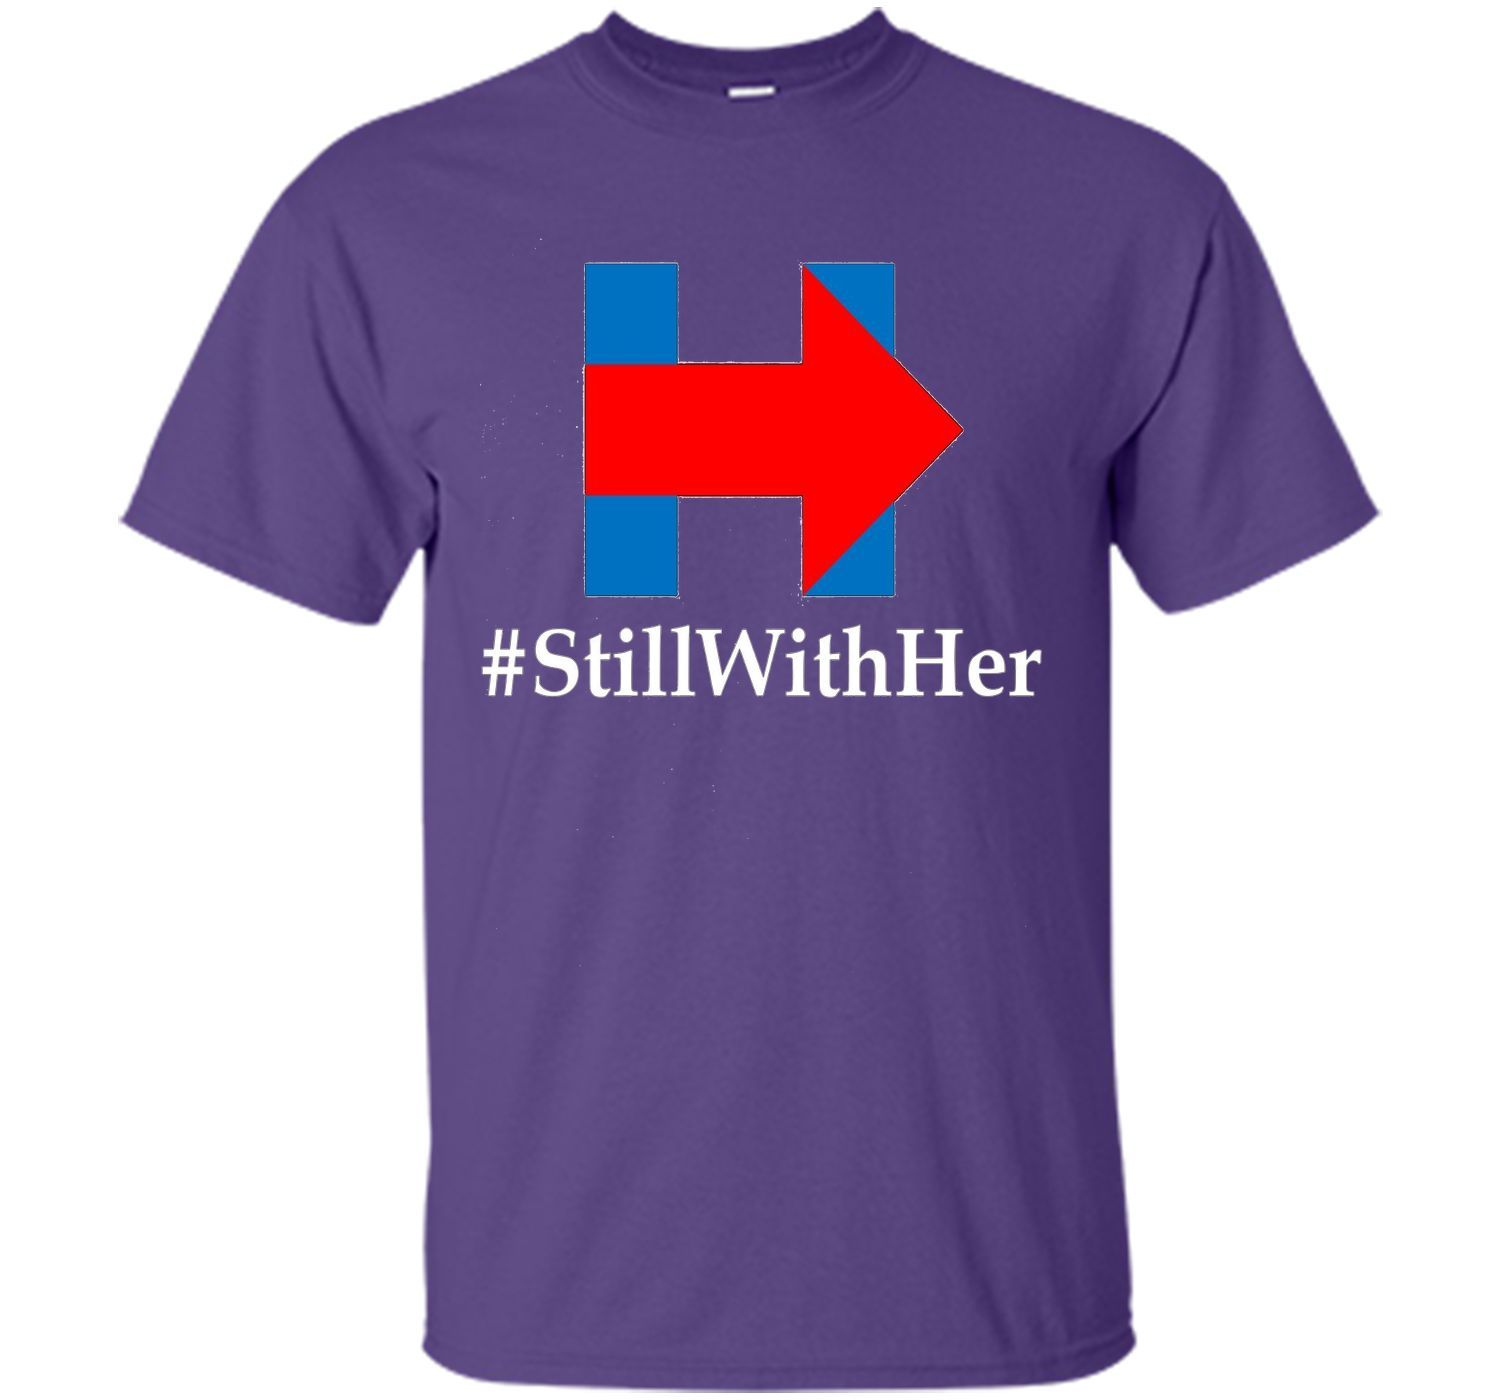 Still With Her My President Hillary Clinton 2016 T-Shirt